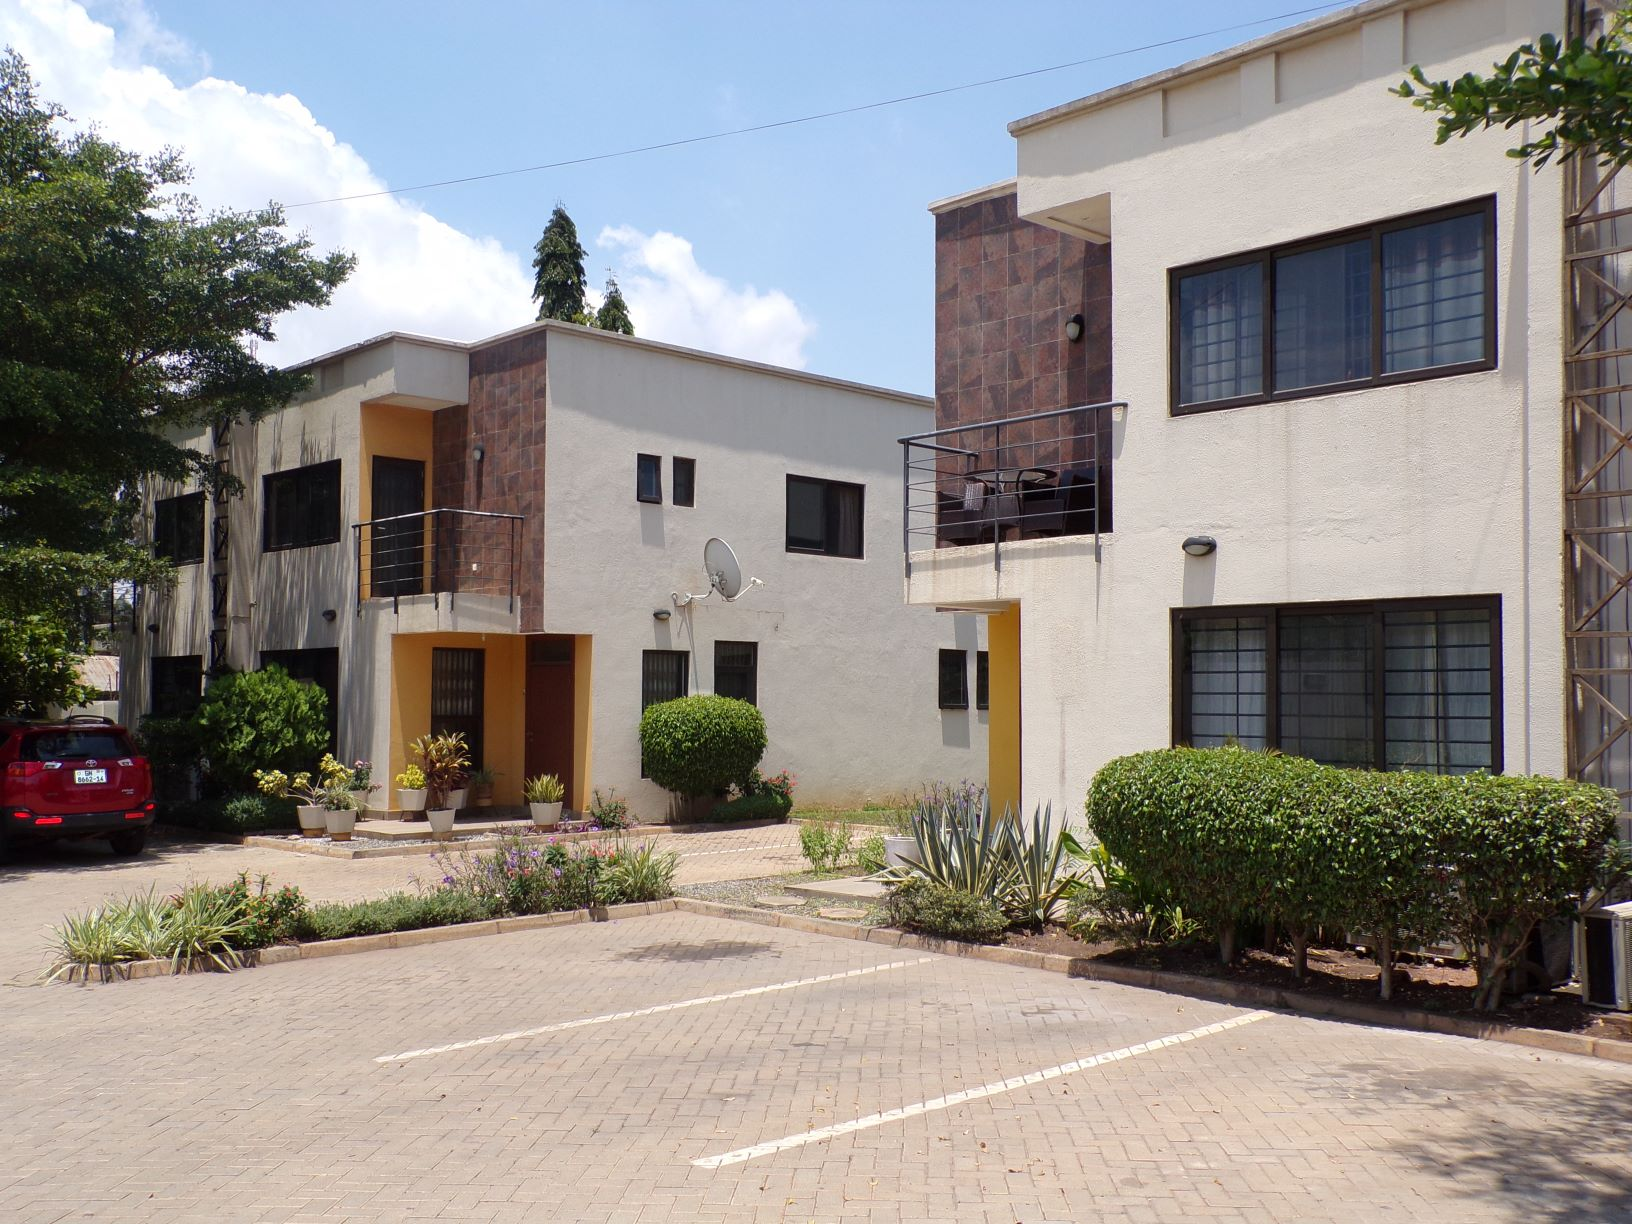 3 bedroom unfurnished townhouse for rent in Ringway